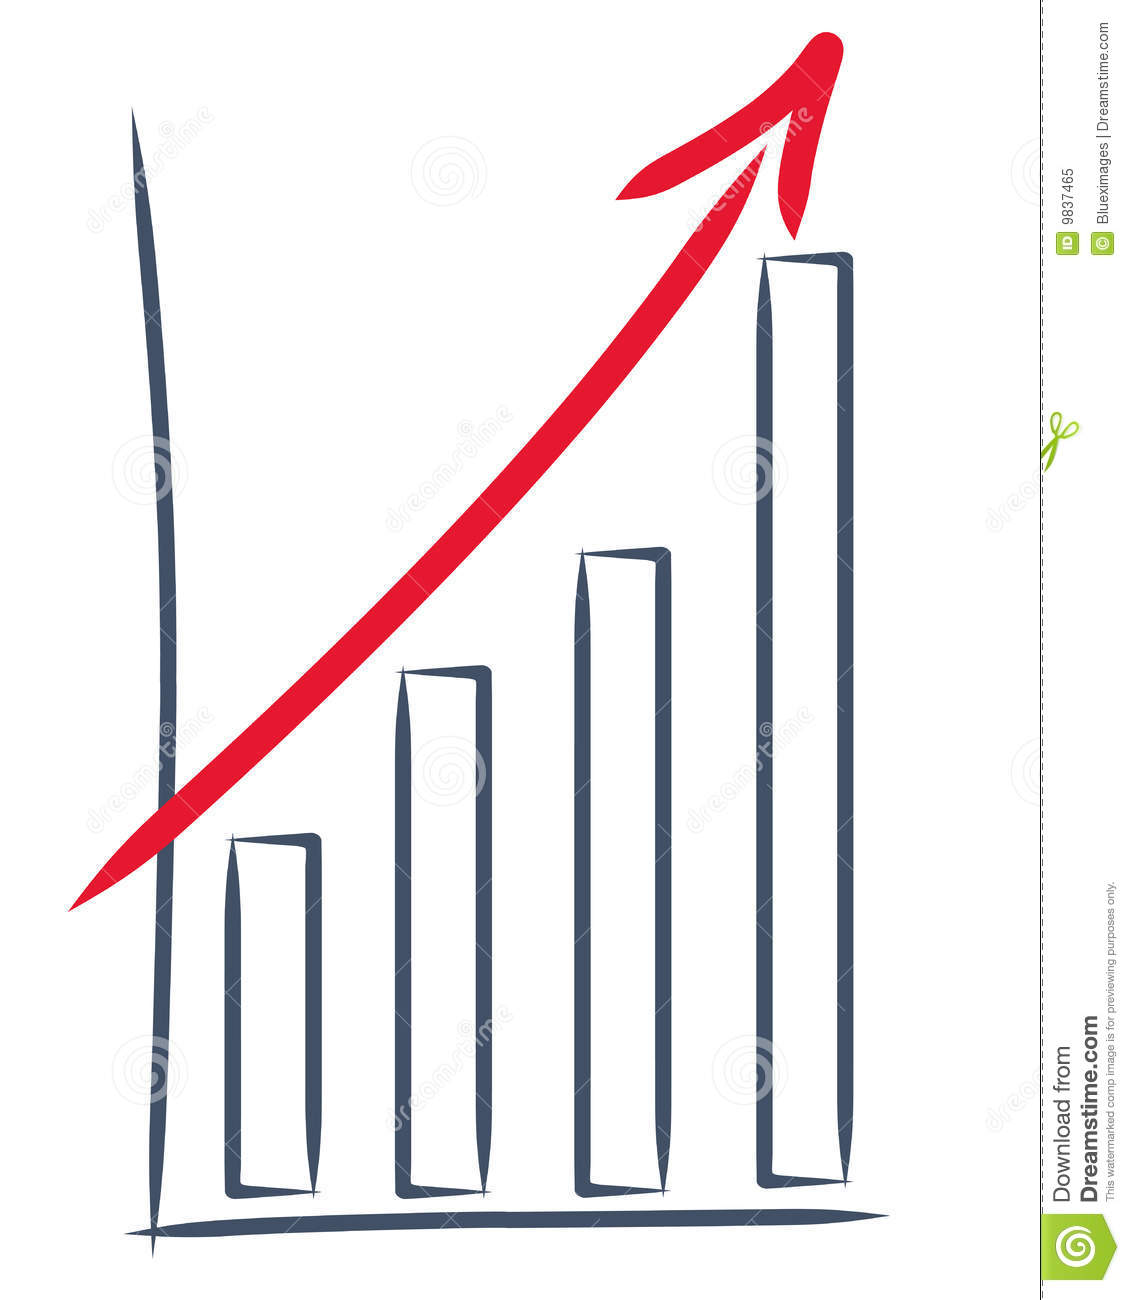 Upward trend clipart svg library download Drawing Of A Sales Increase And Upward Trend #Ttj4qi - Clipart Kid svg library download